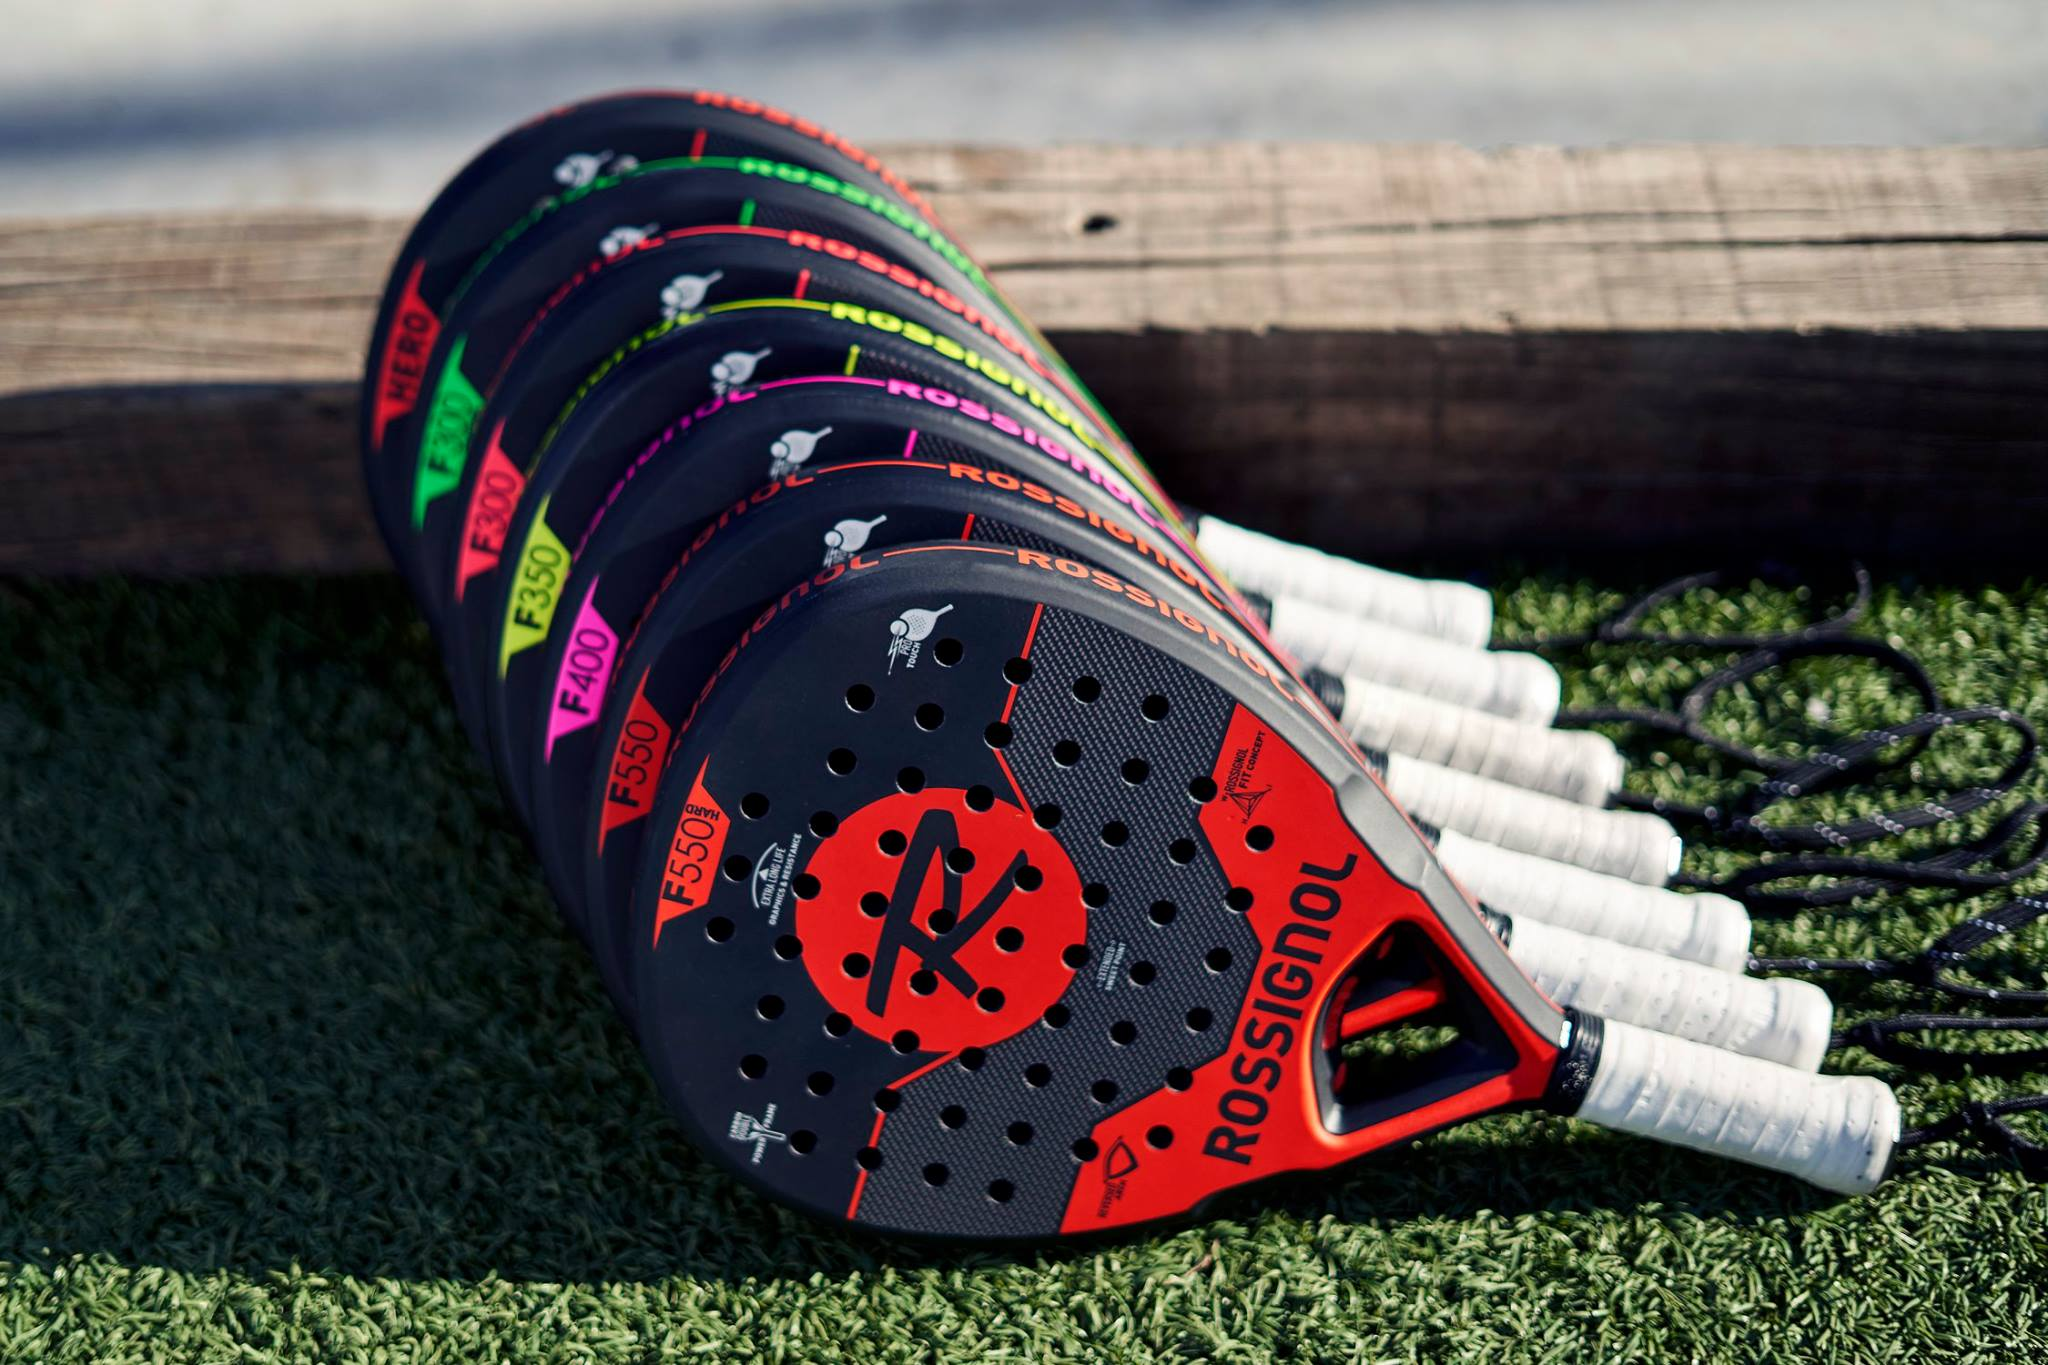 Rossignol brings the padel and skiing